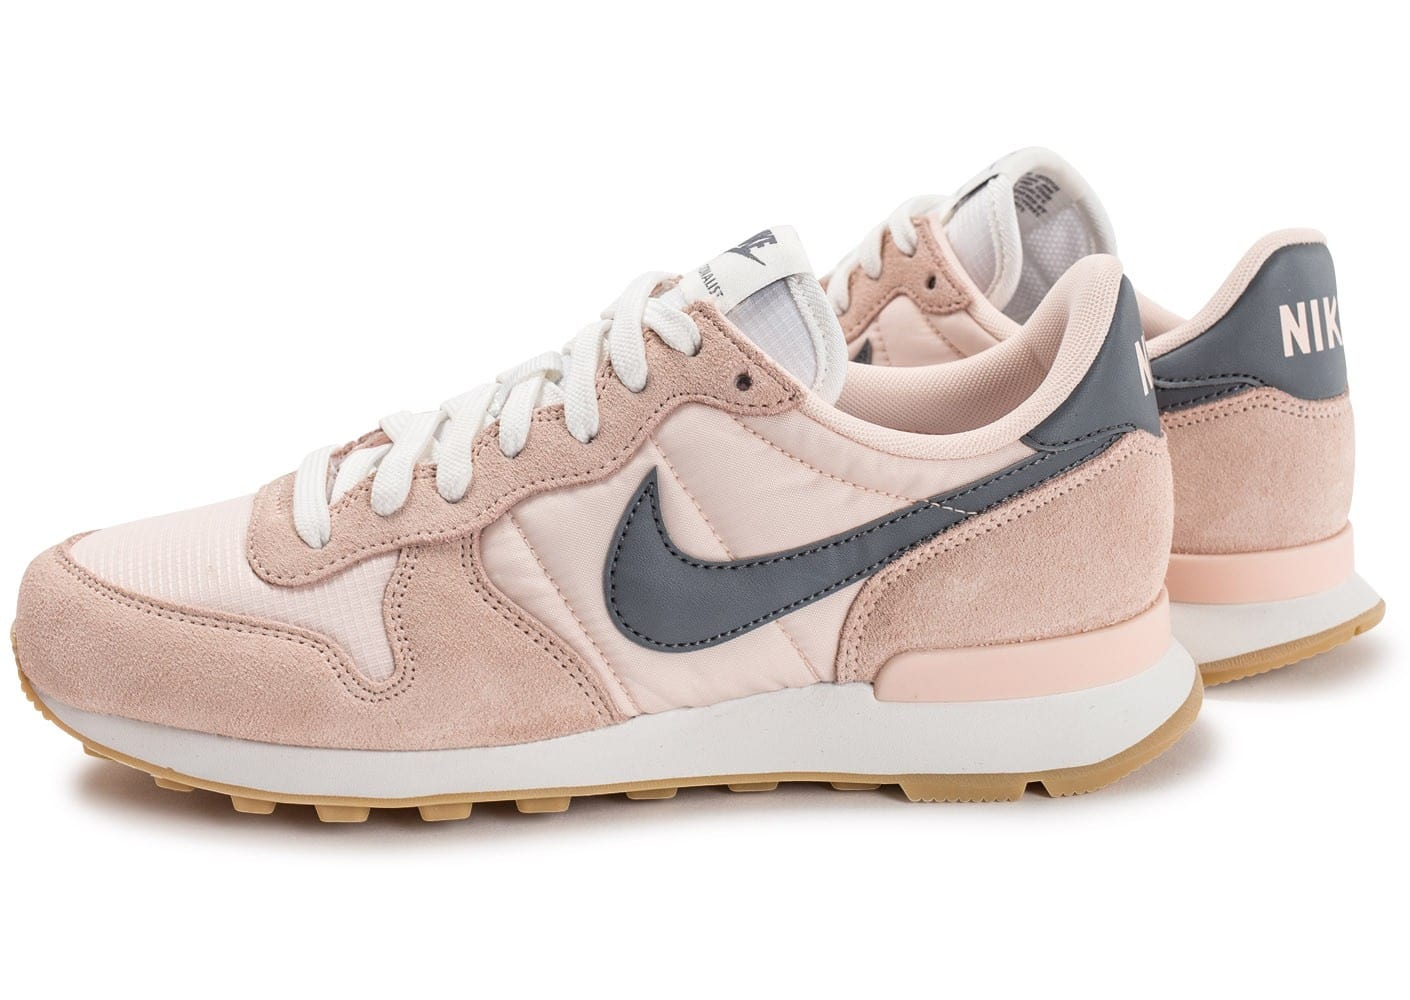 Baskets Bas Beige Internationaliste Nike tZg6a